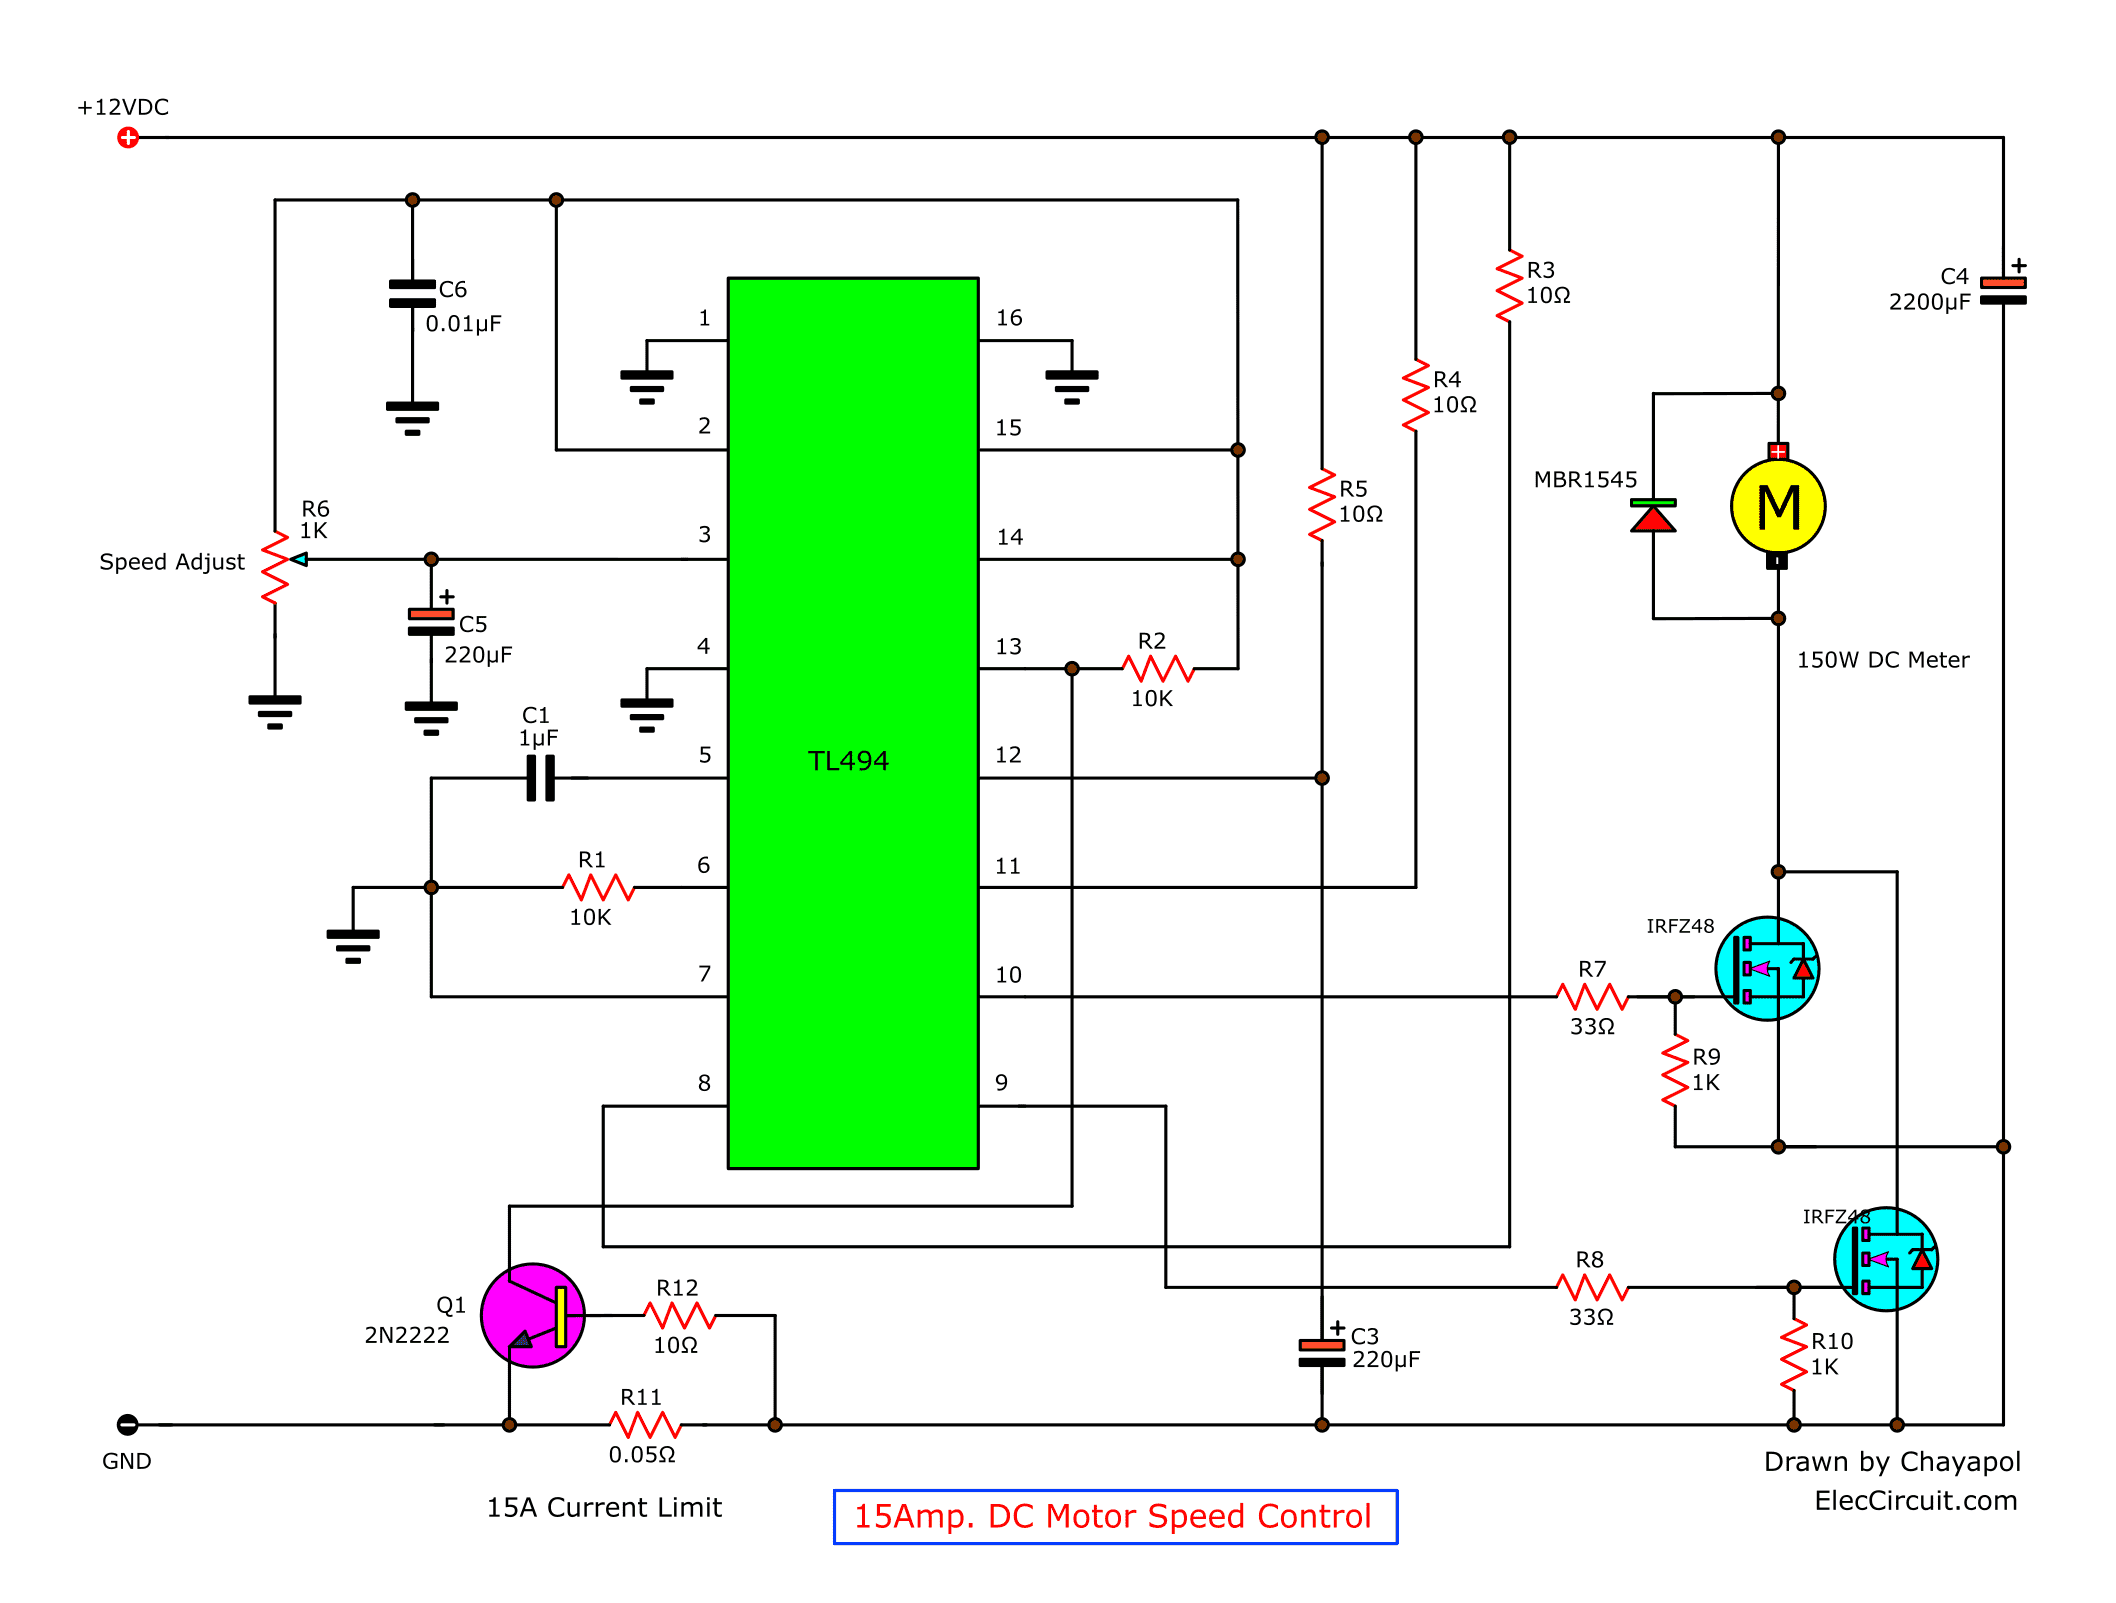 [DIAGRAM_34OR]  12V-24V PWM Motor controller circuit using TL494-IRF1405 | Dc Motor Control Wiring Diagram |  | ElecCircuit.com